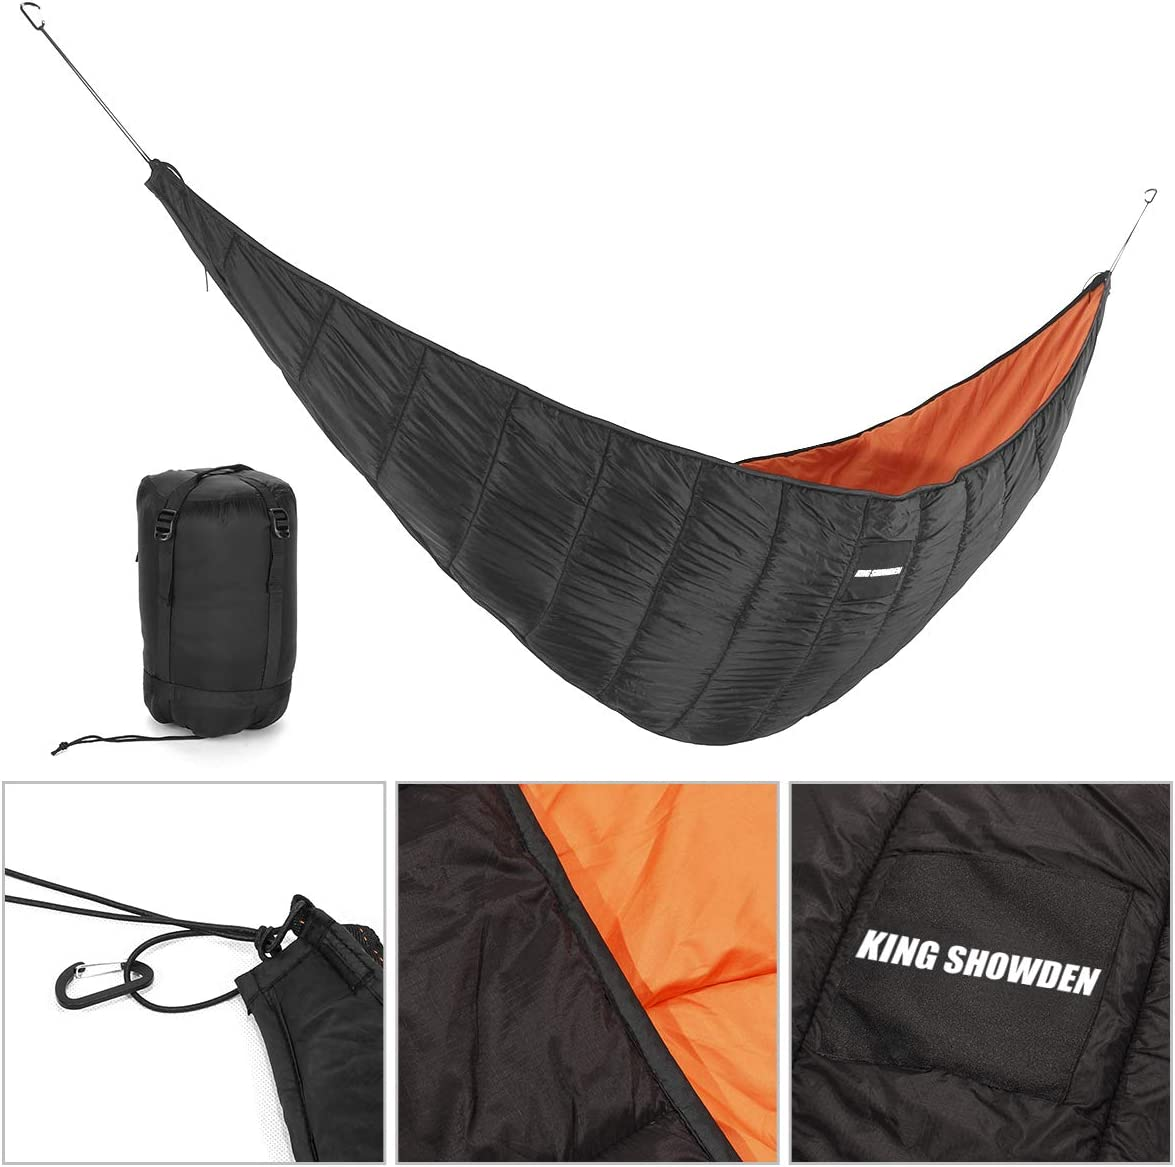 G4Free Large Camping Hammock with Mosquito Net 2 Person Pop-up Parachute Lightweight Hanging Hammocks Tree Straps Swing Hammock Bed for Outdoor Backpacking Backyard Hiking Black Orange